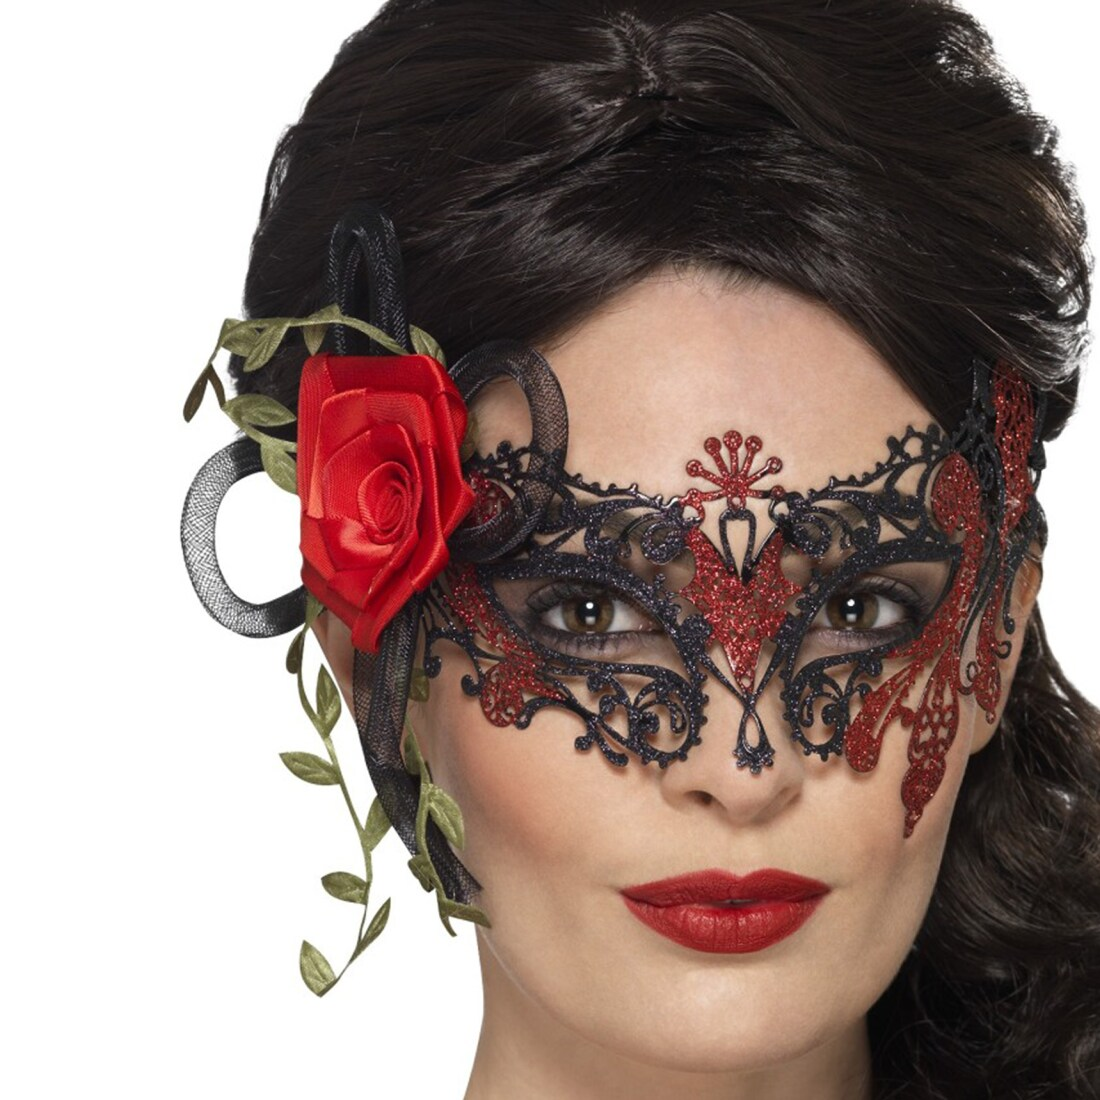 dia de los muertos maske venezianische augenmaske mit rosen schwarz r 12 95. Black Bedroom Furniture Sets. Home Design Ideas